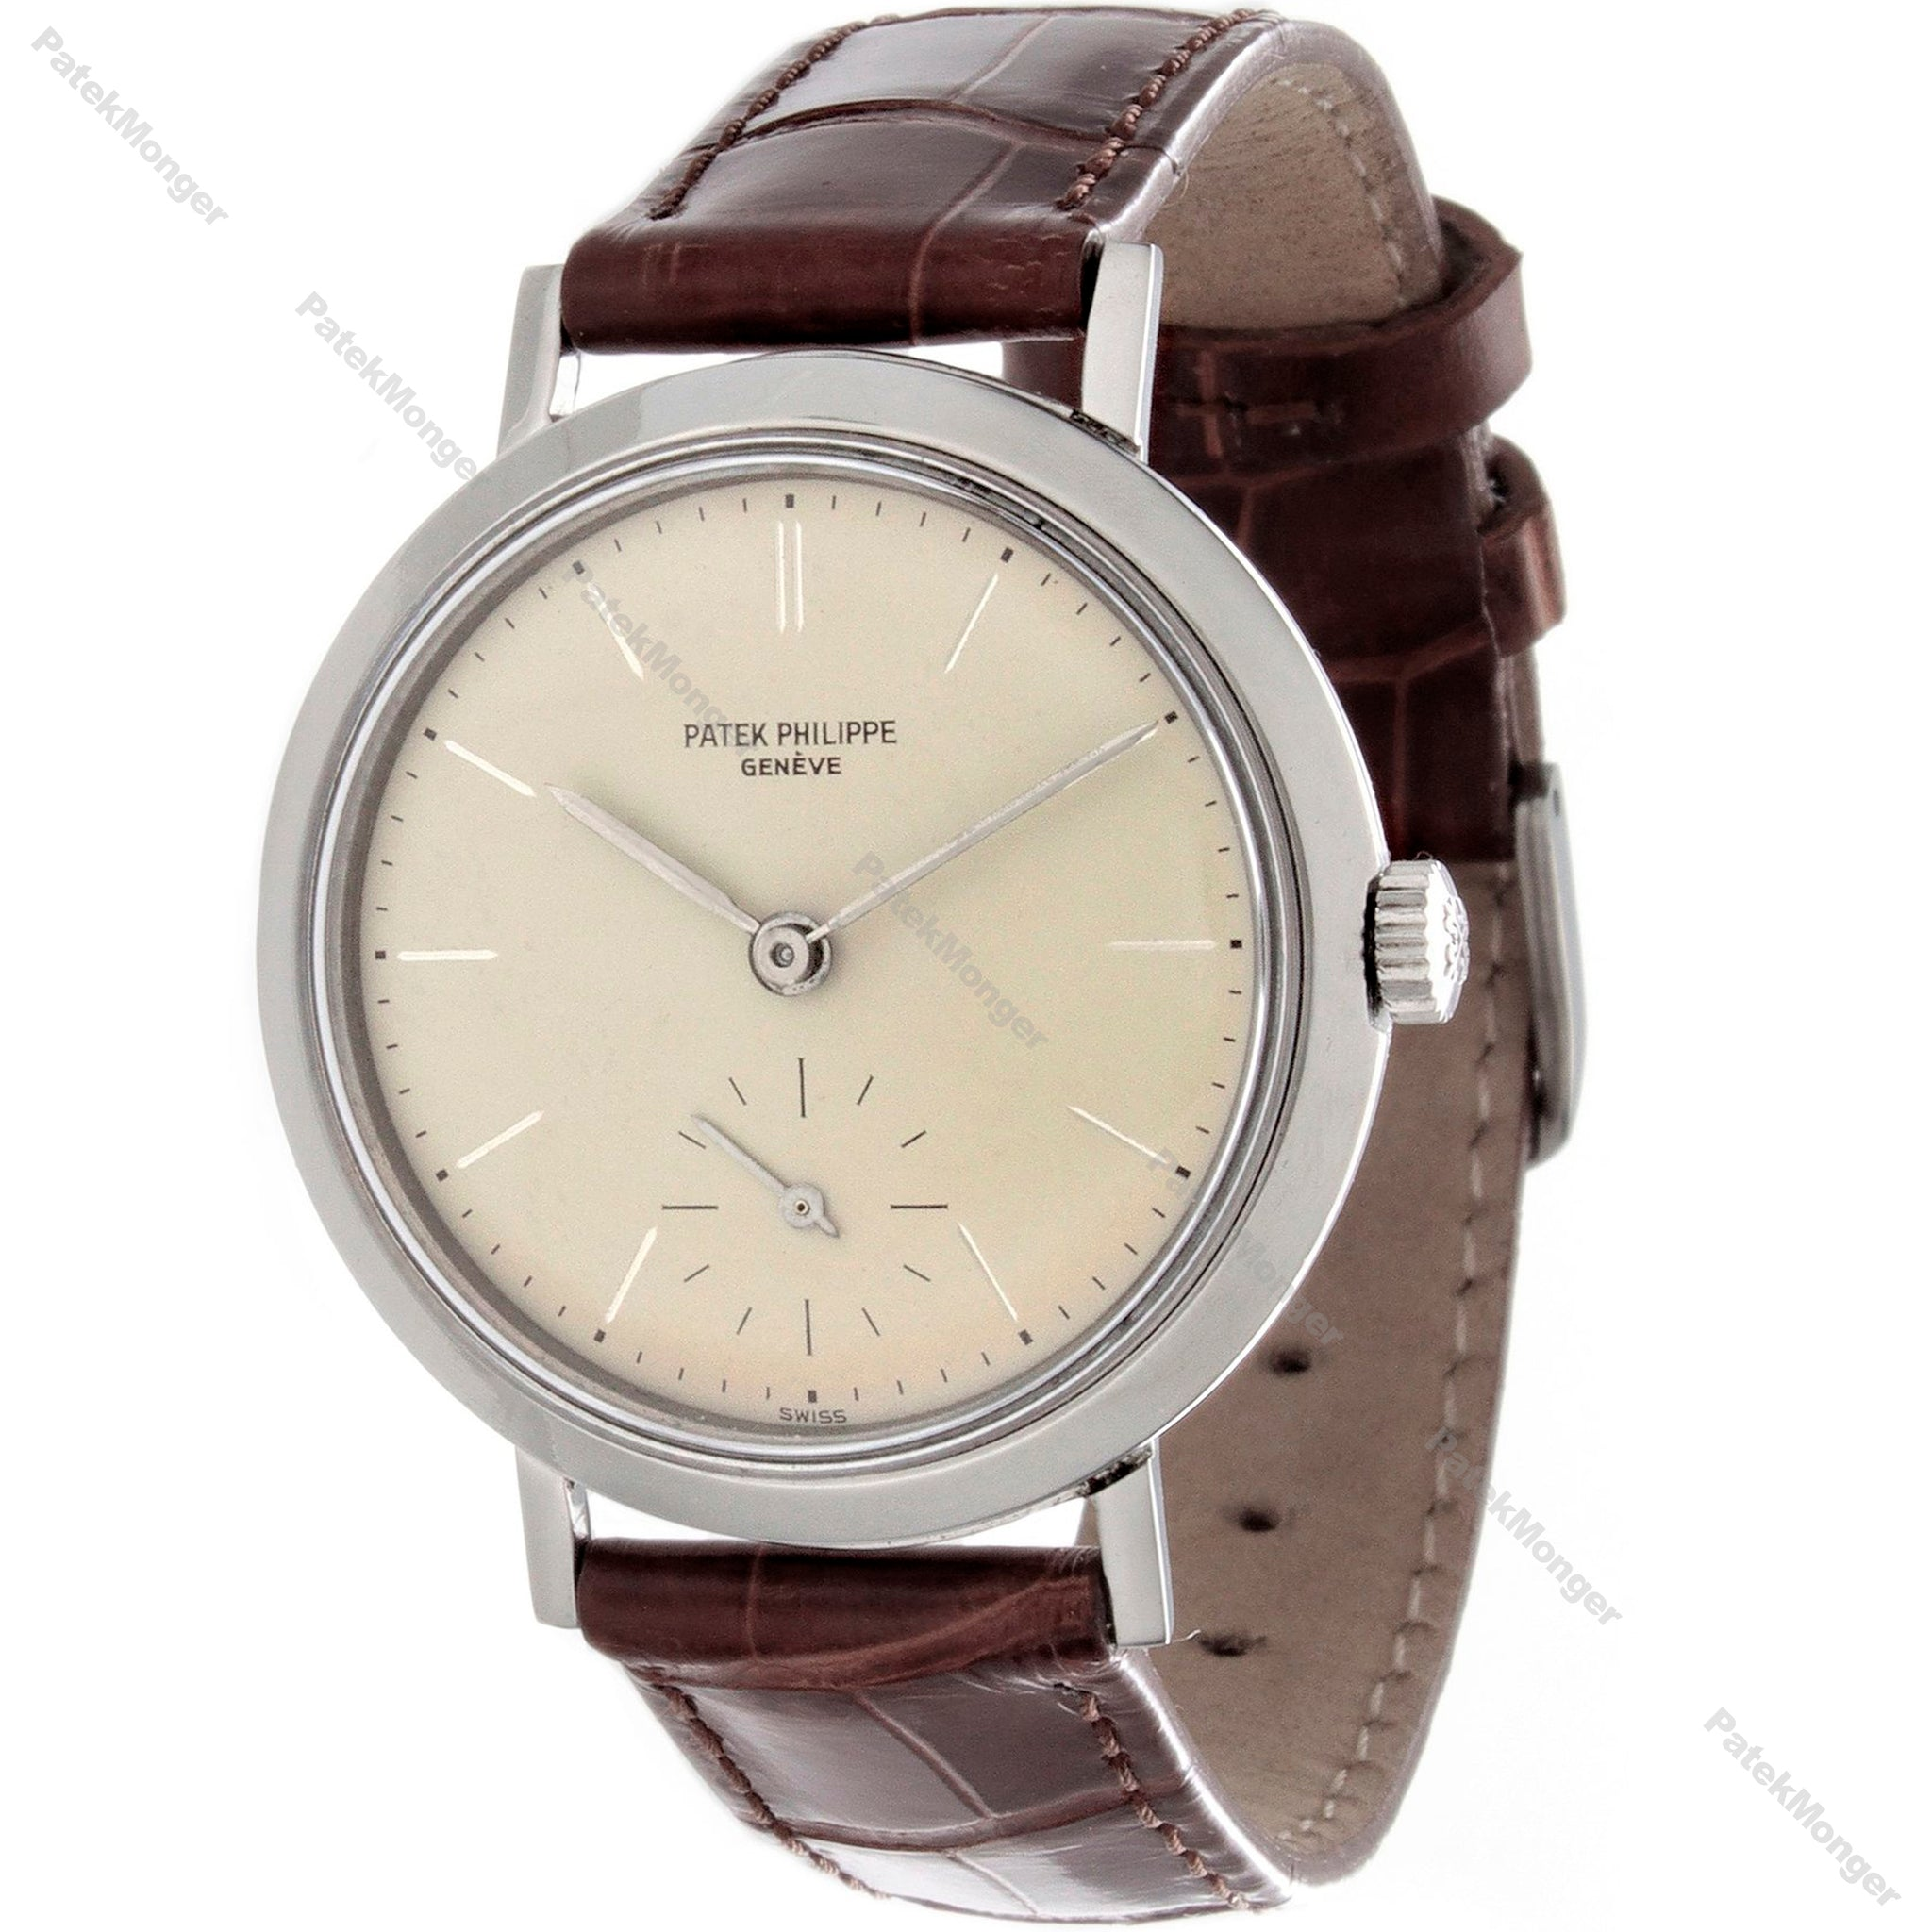 Patek Philippe 3419A Stainless Steel Calatrava Watch